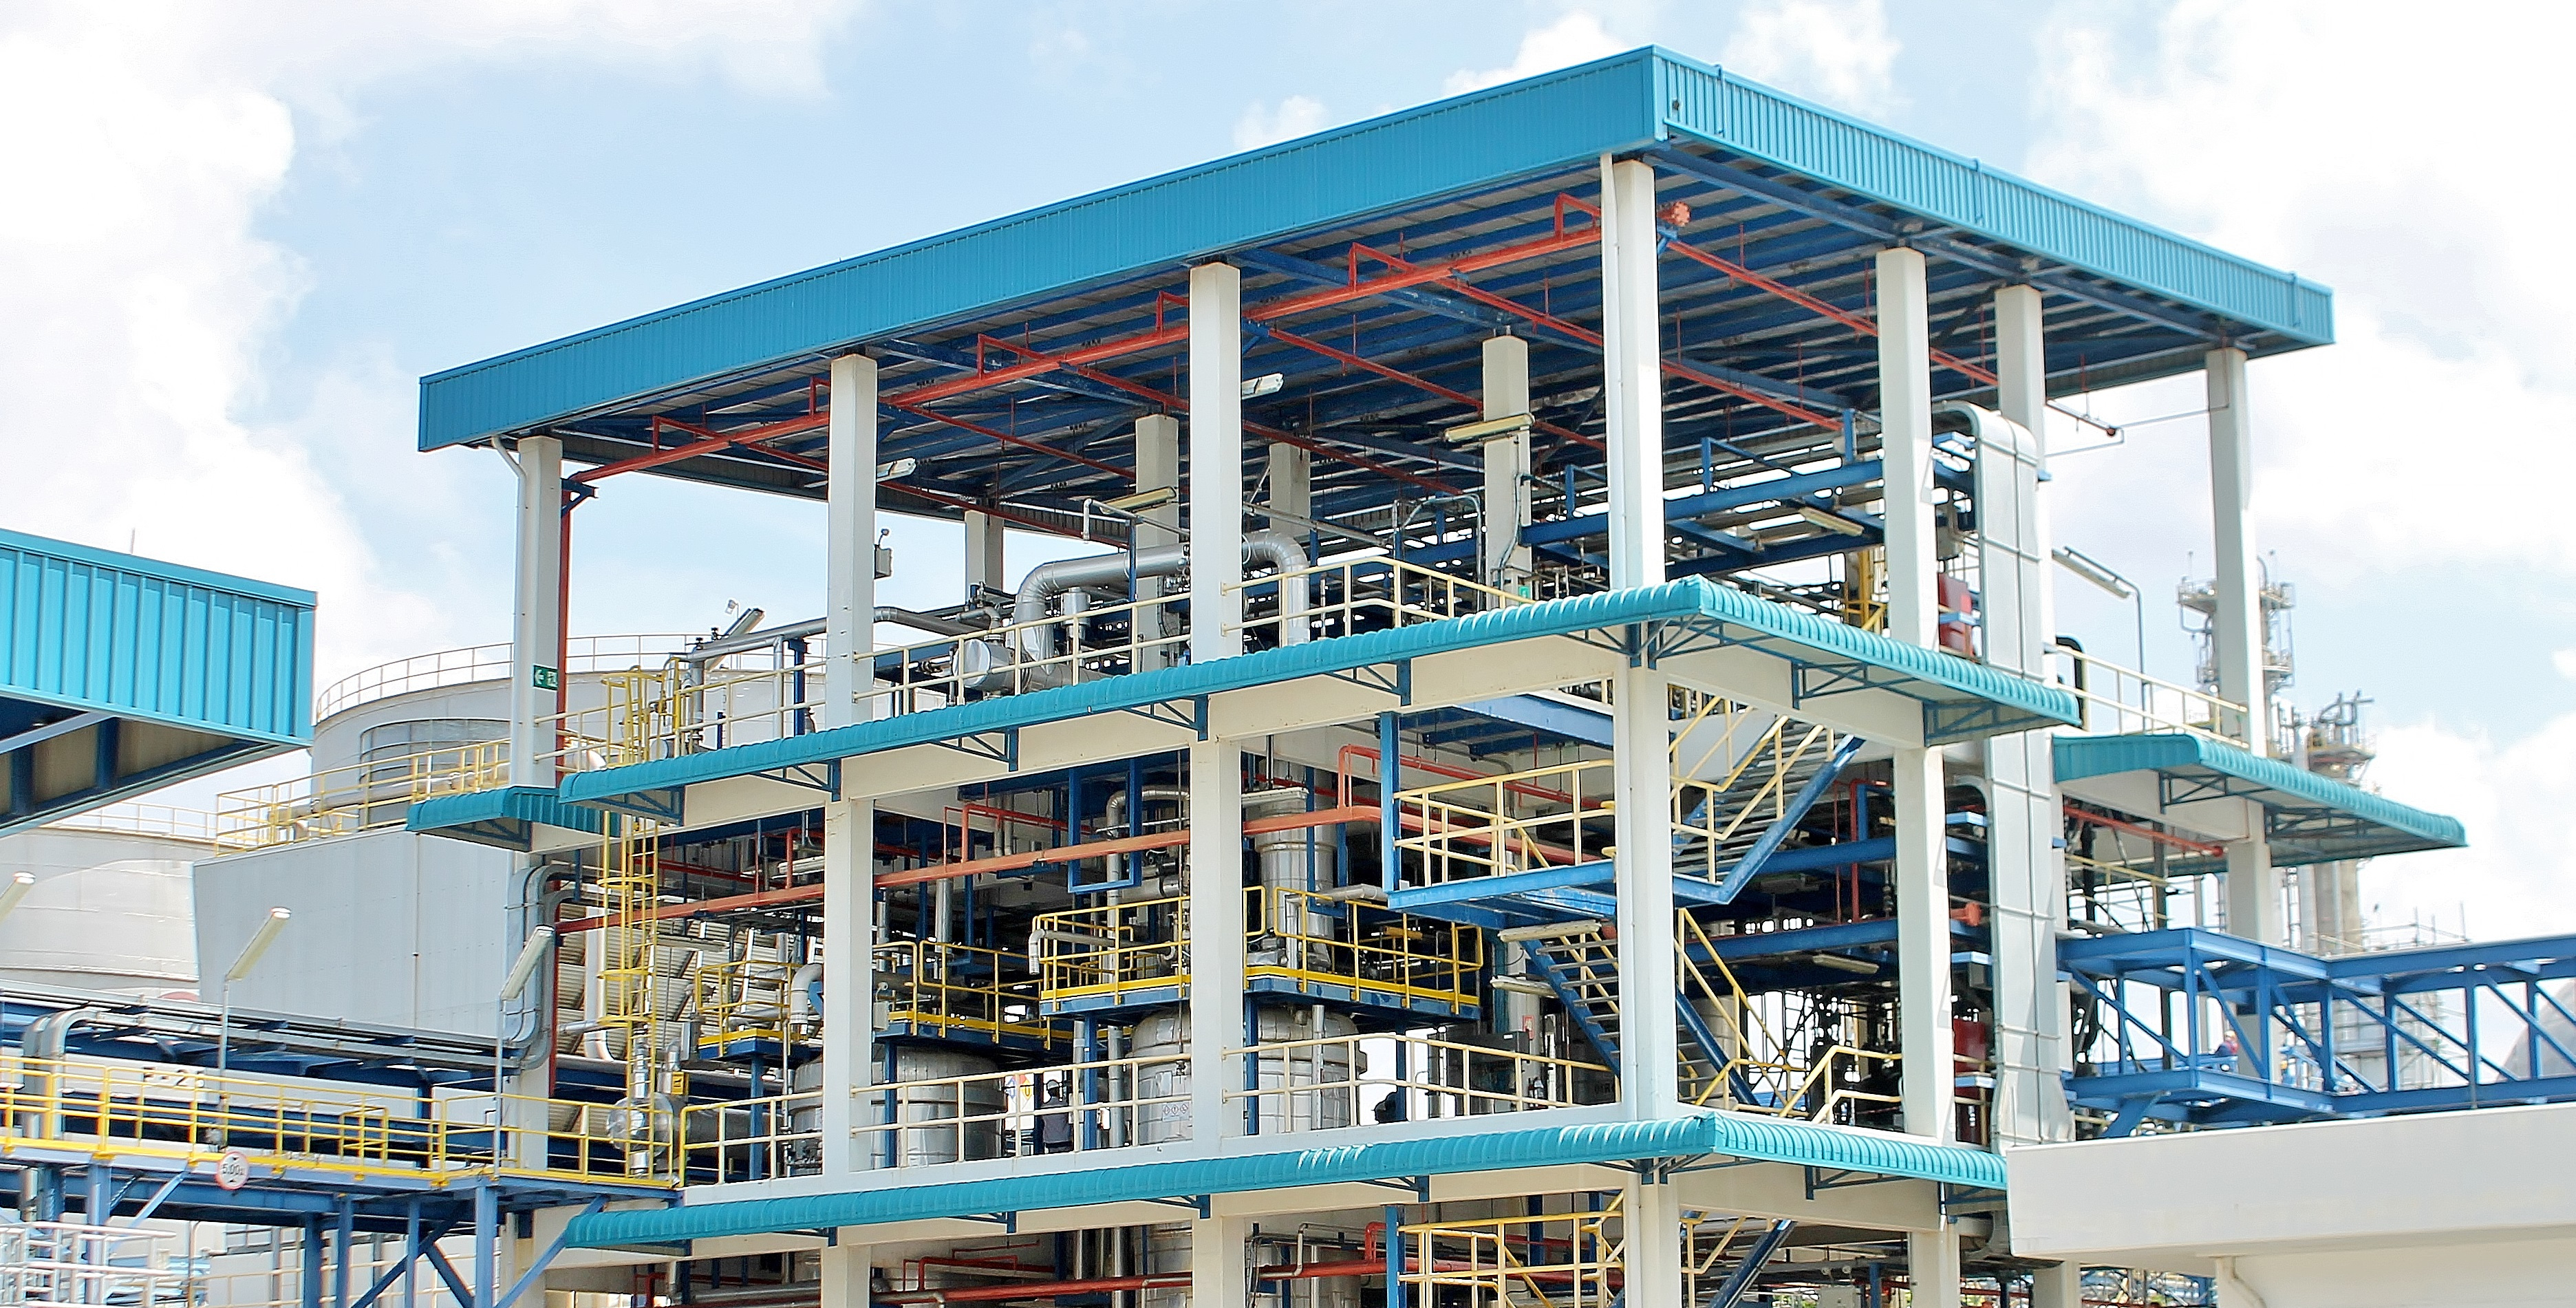 Thai Ethoxylate Looks to Double Capacity in Response to ASEAN Demand